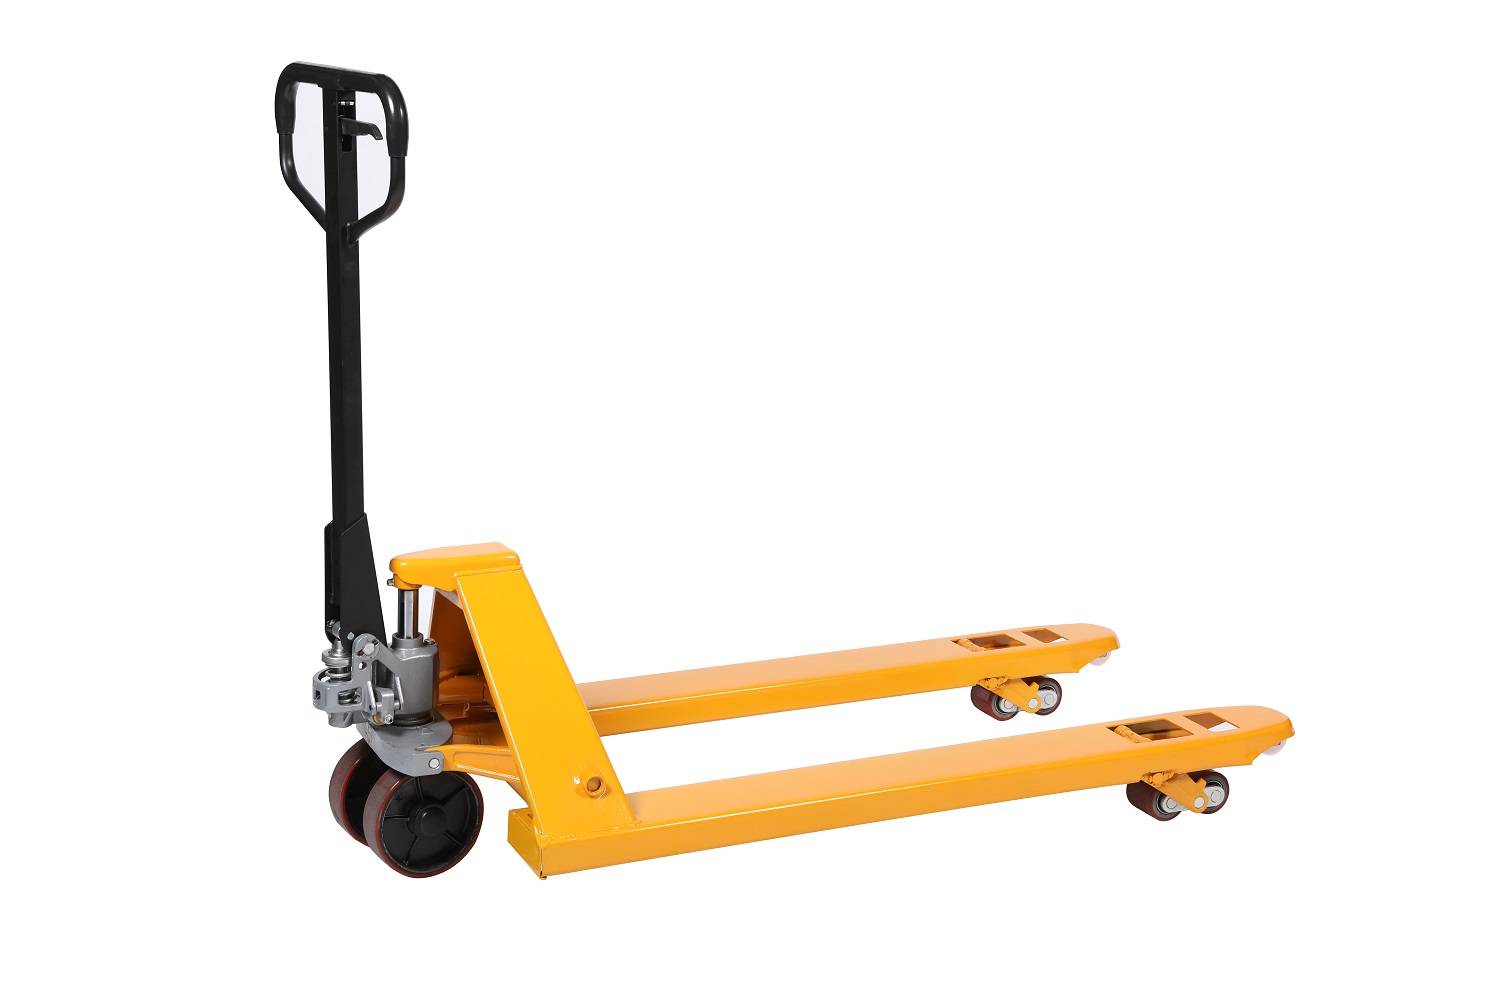 electric pallet truck lithium-ion capacity 1500 kg